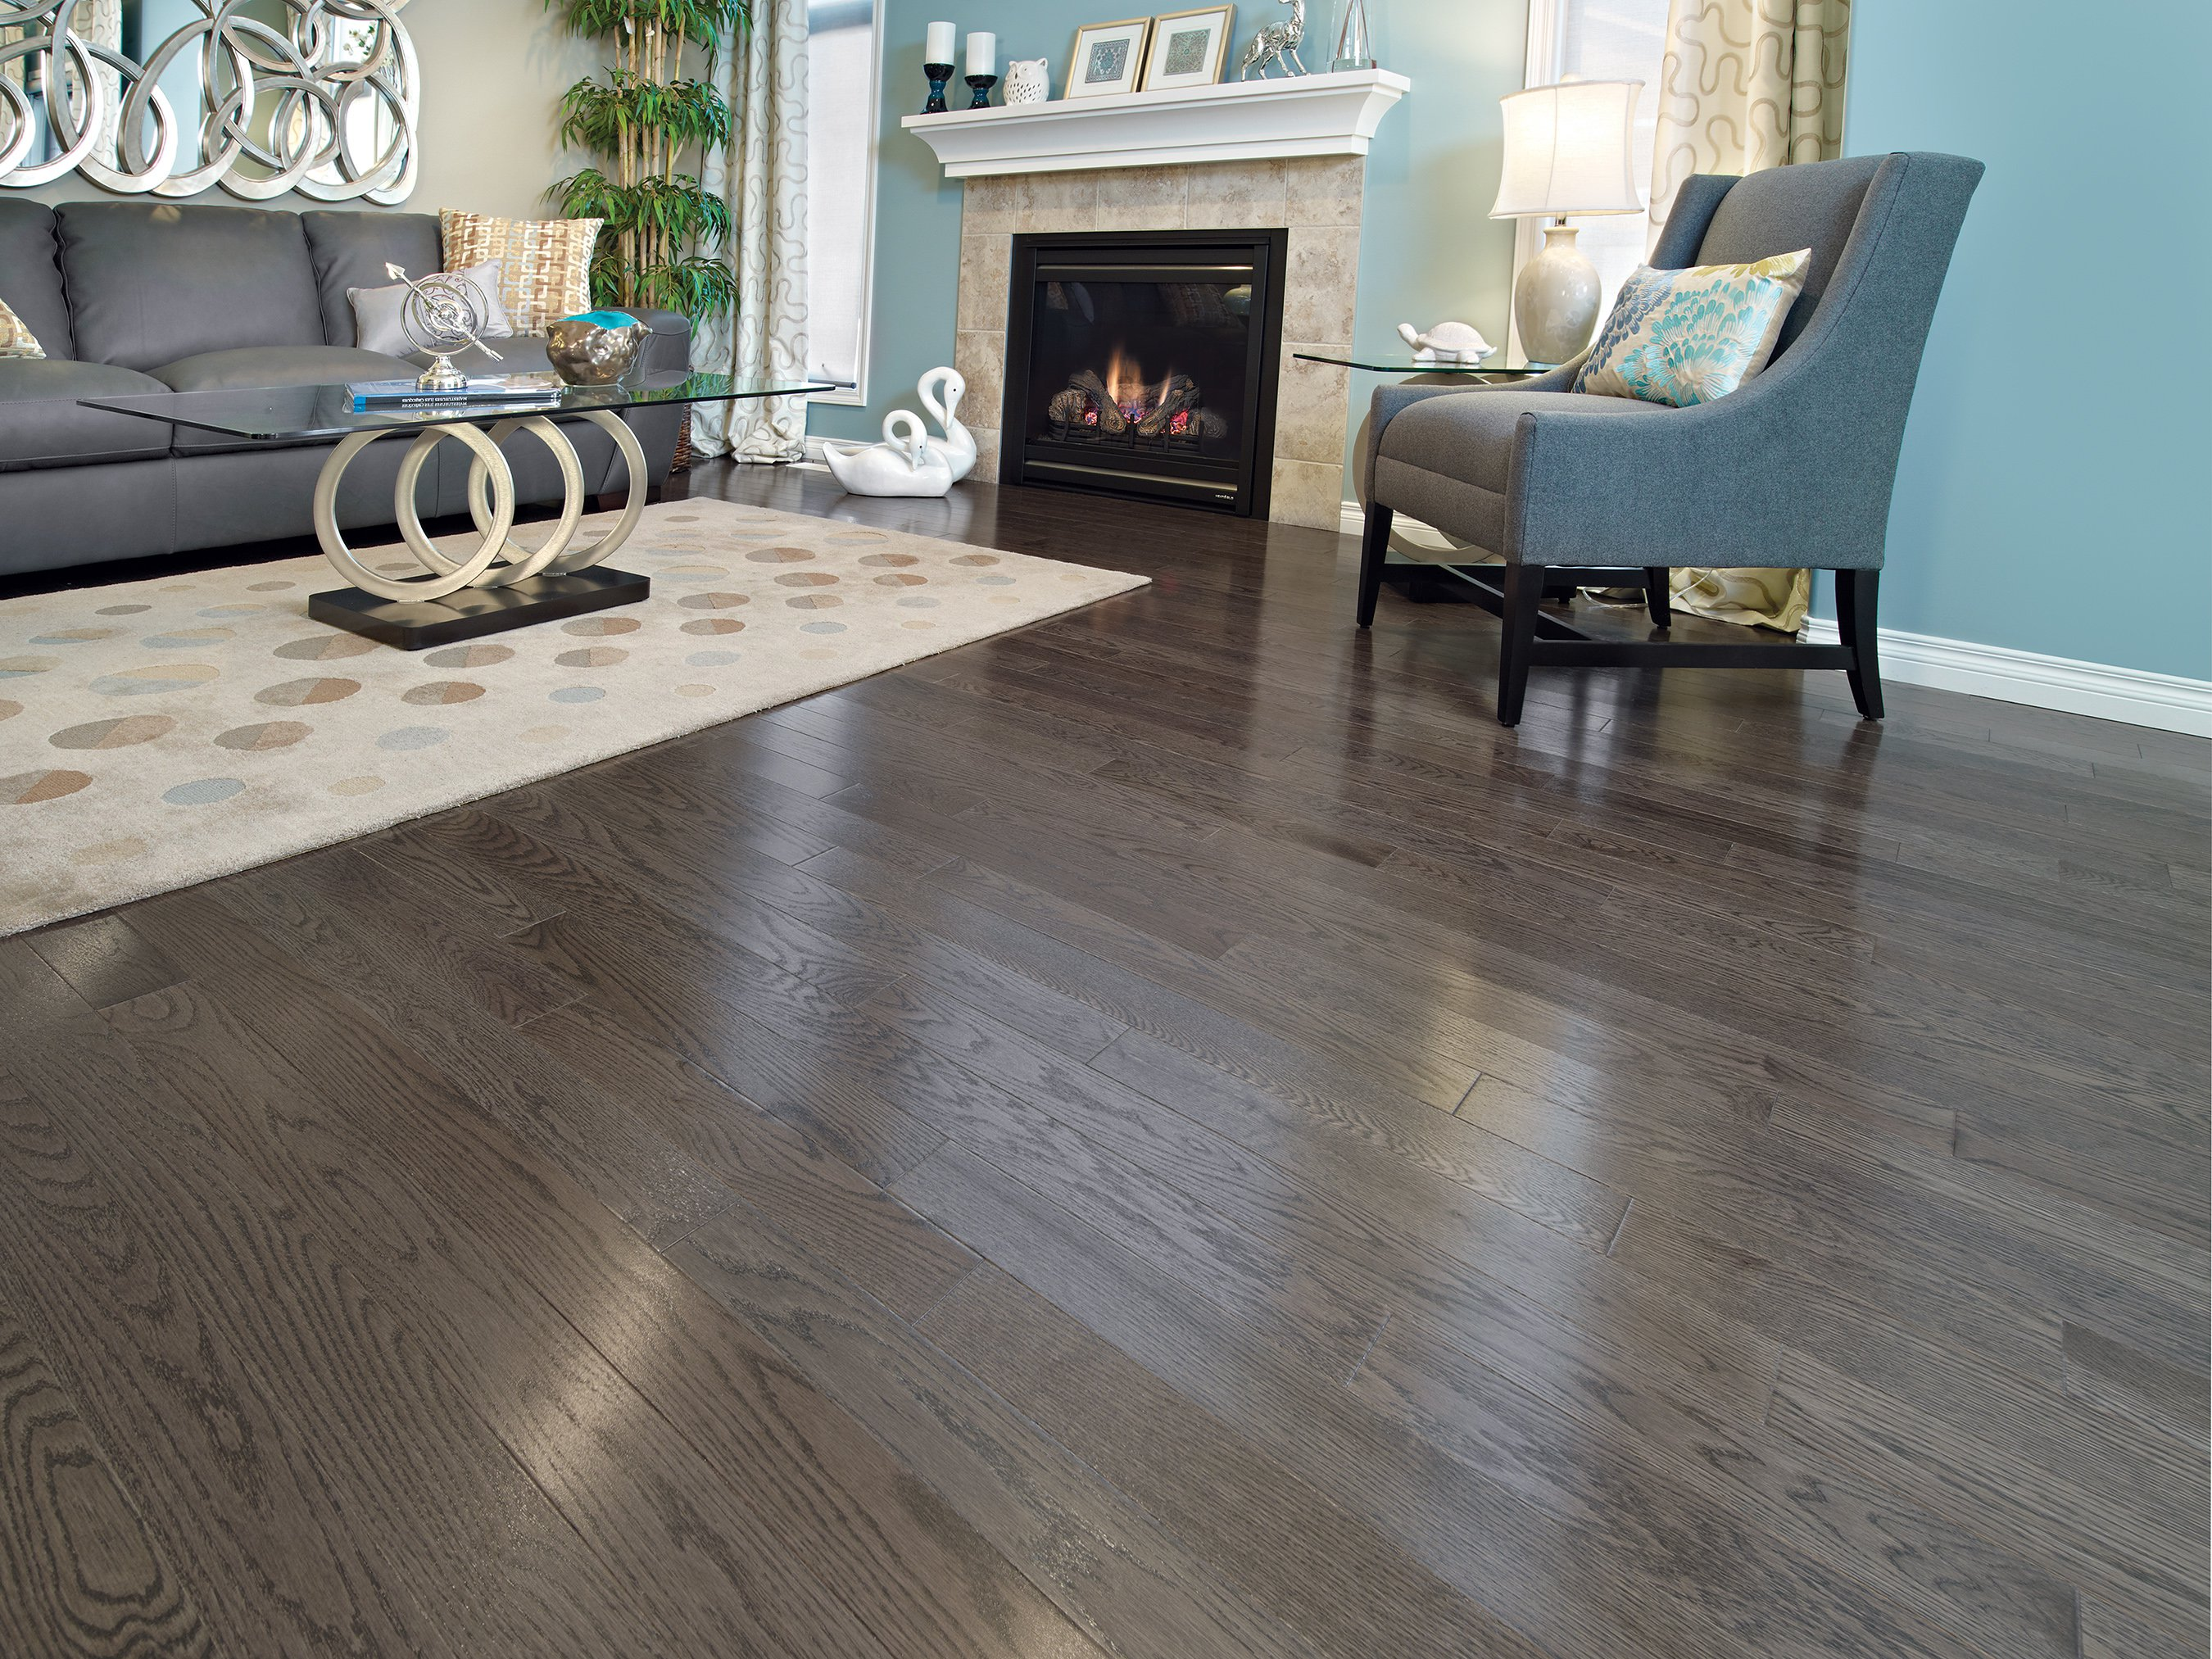 Red Oak Charcoal Exclusive Smooth - Ambience image